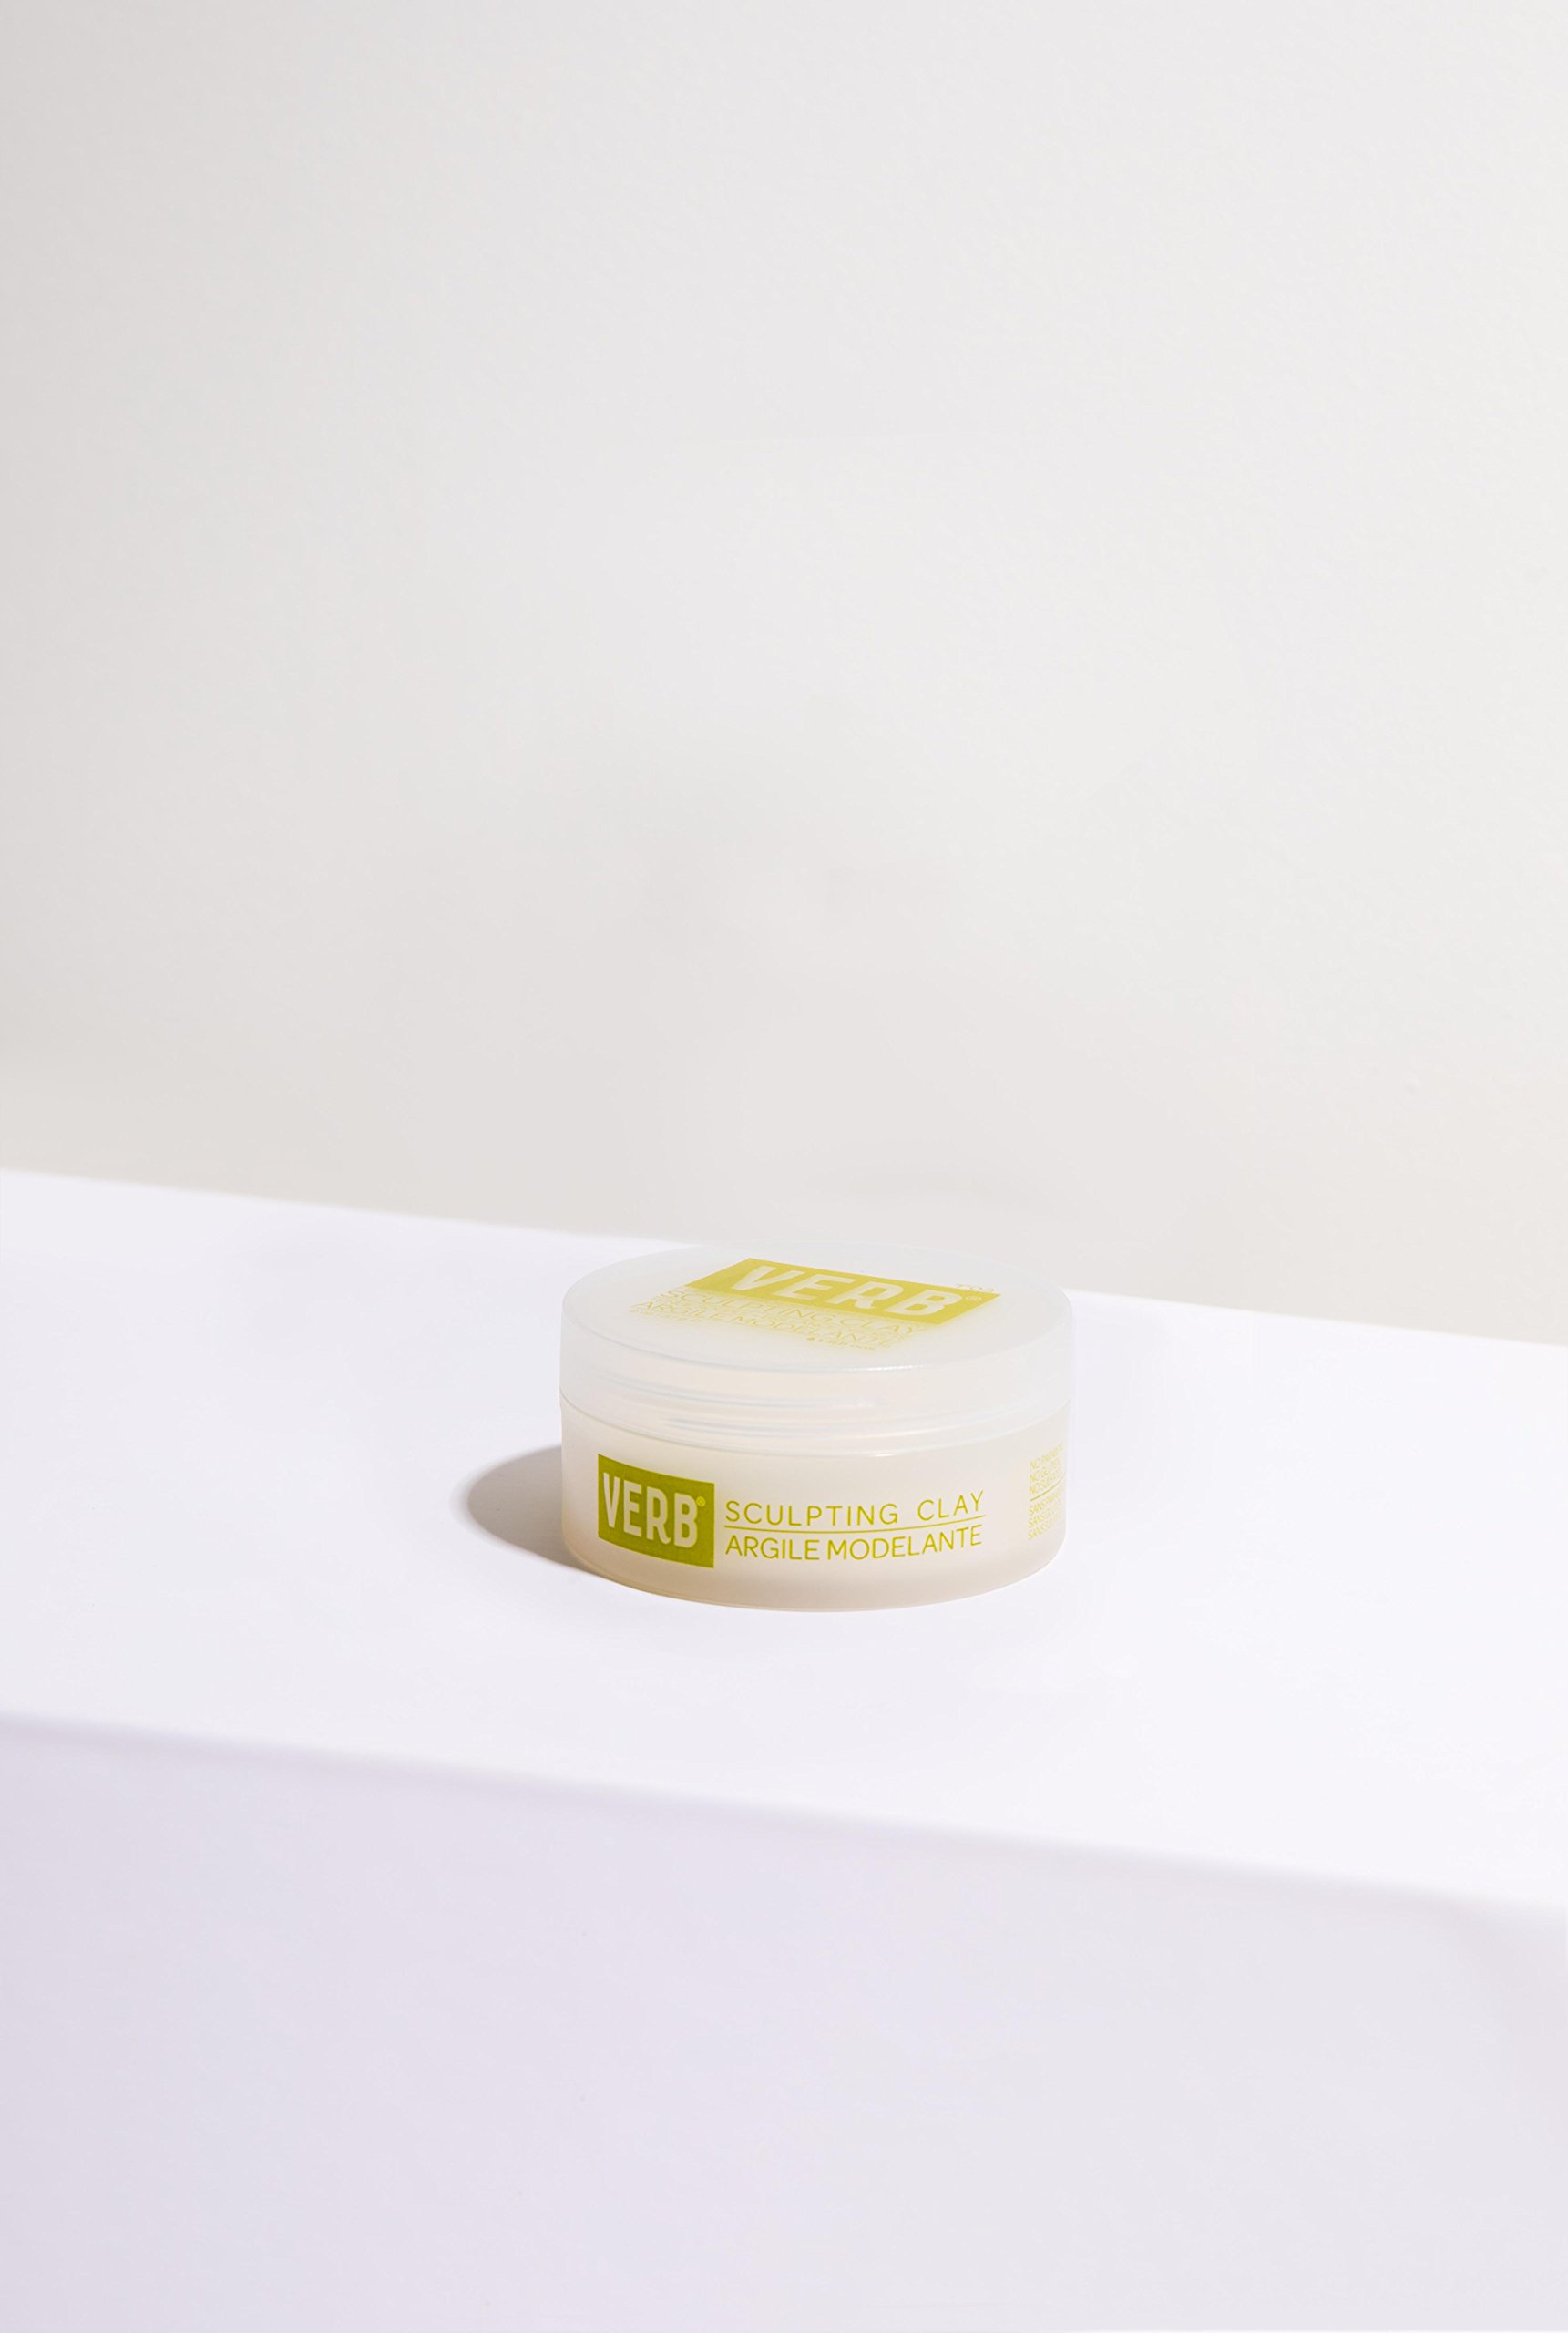 Verb Sculpting Clay - Flexible Hold + Subtle Shine 2oz by verb (Image #3)